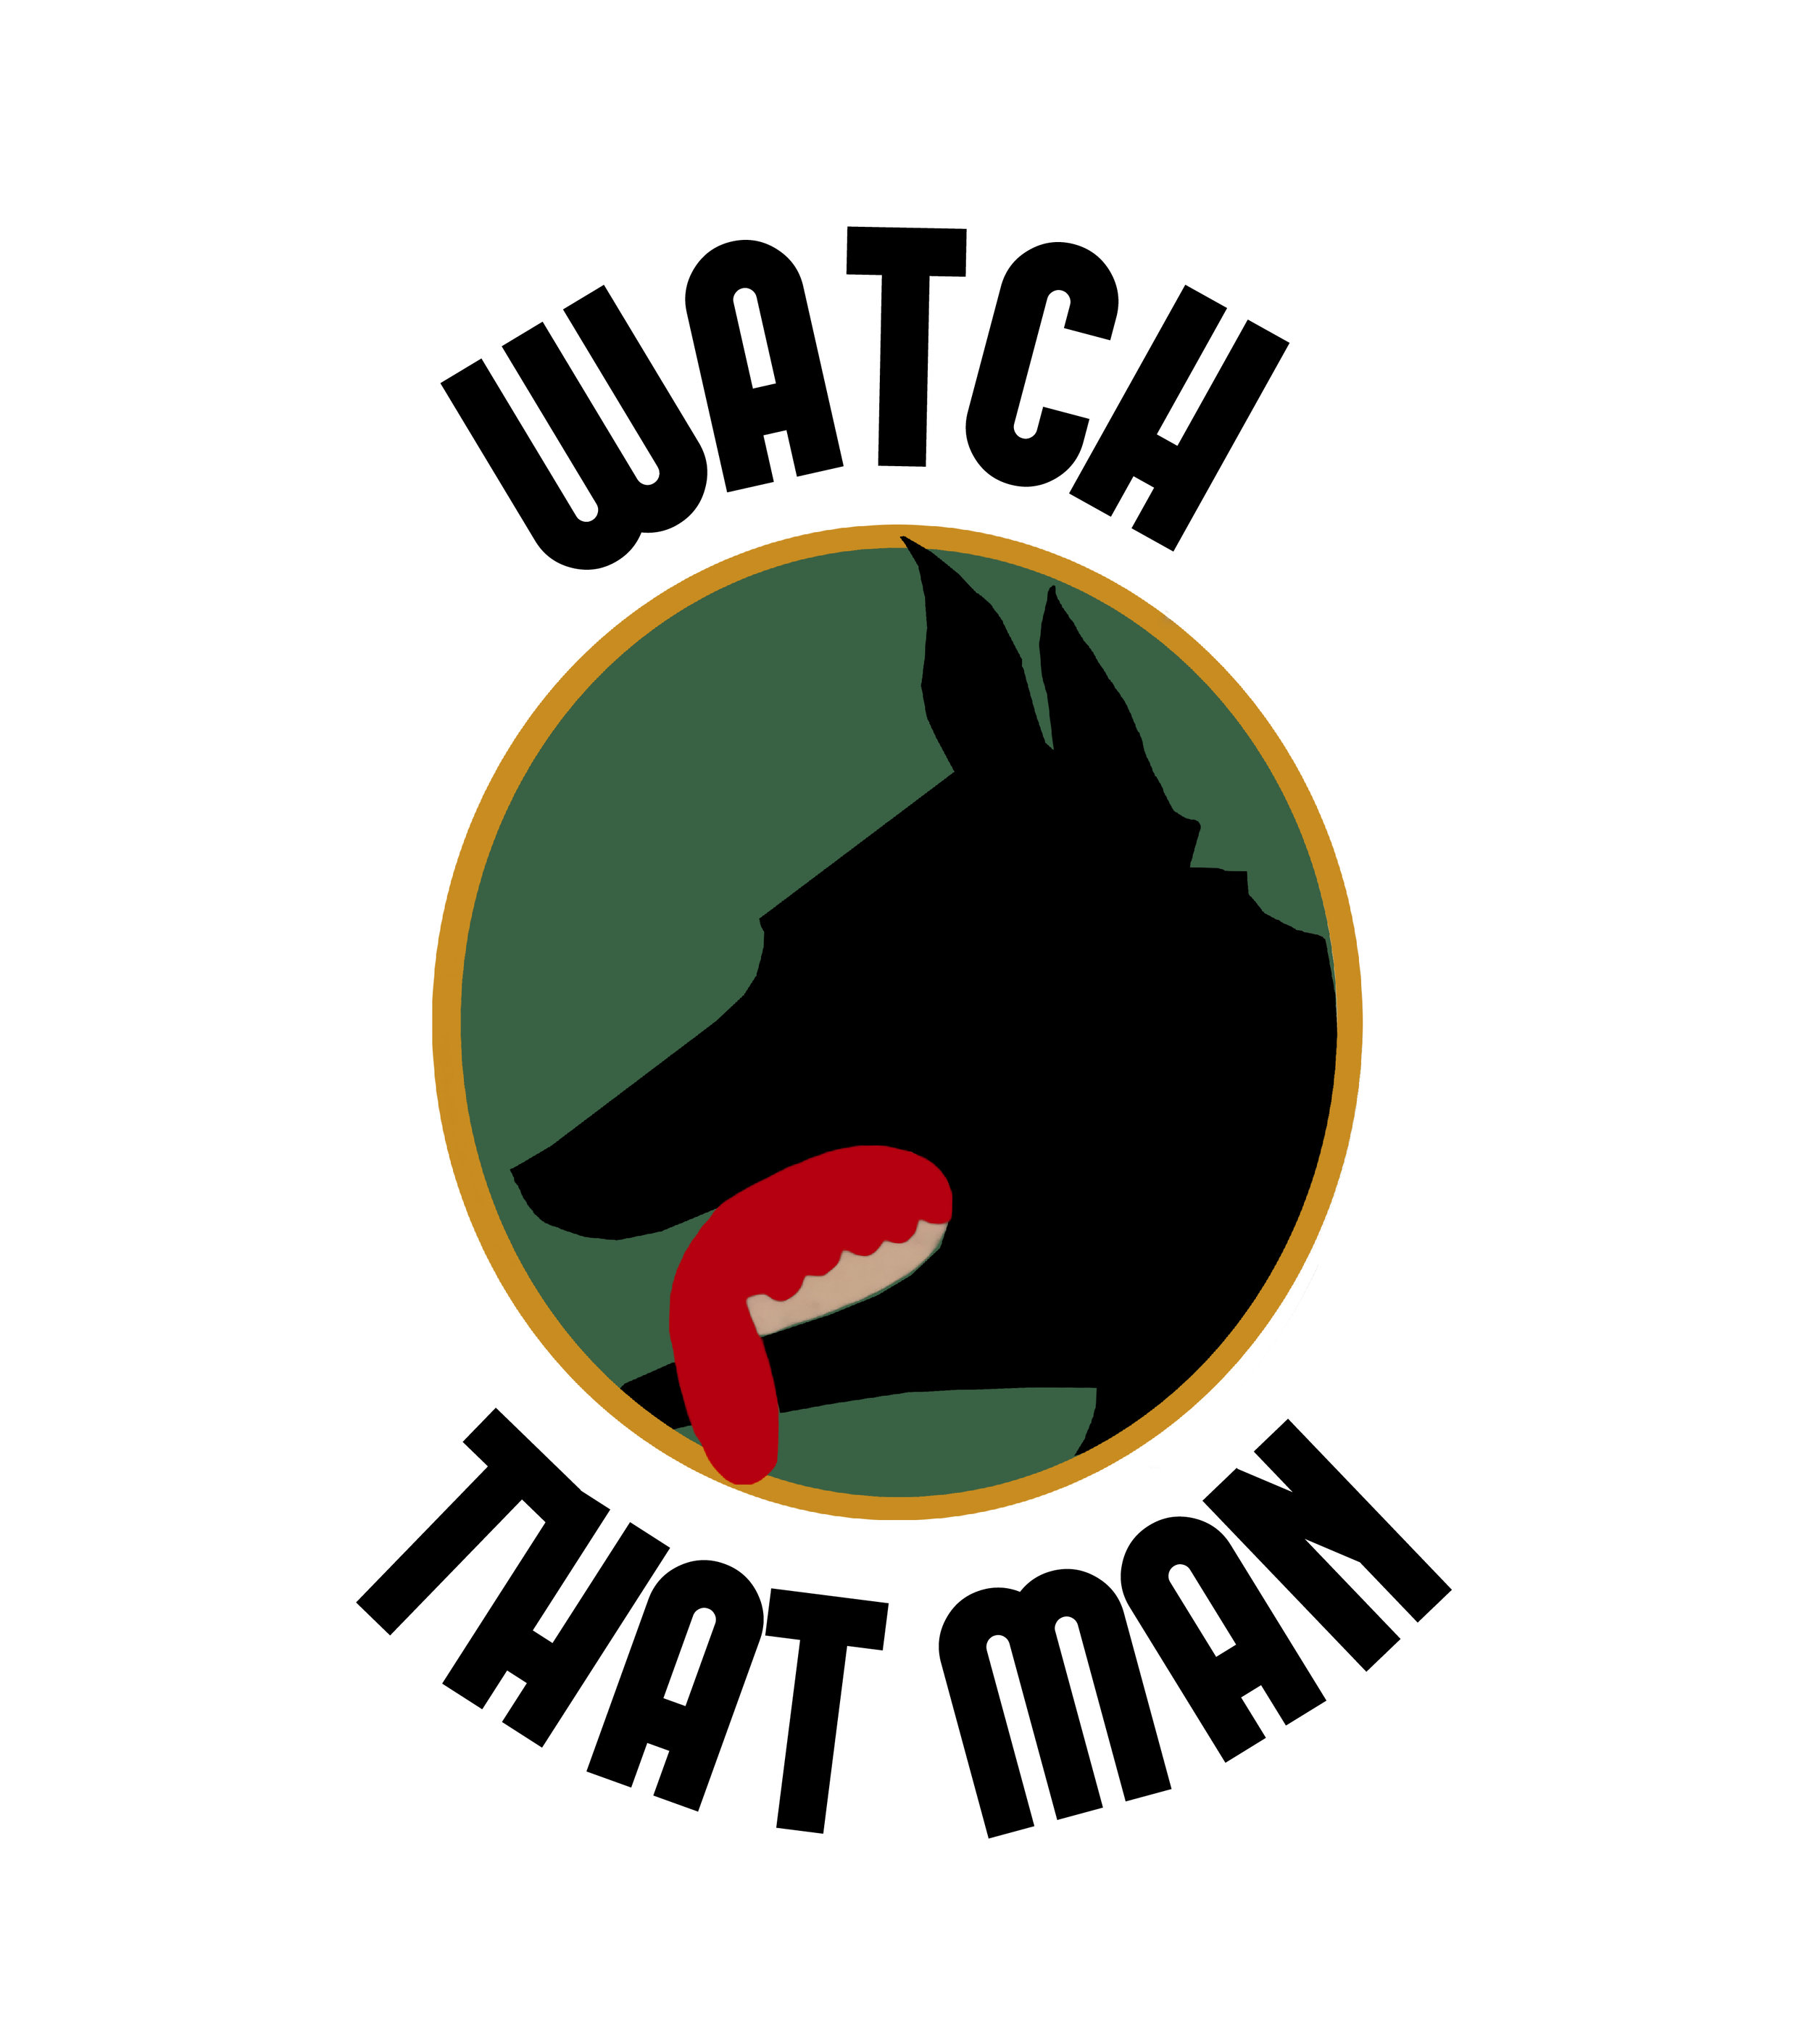 Watch-That-Man-logo-vertical-01.jpg